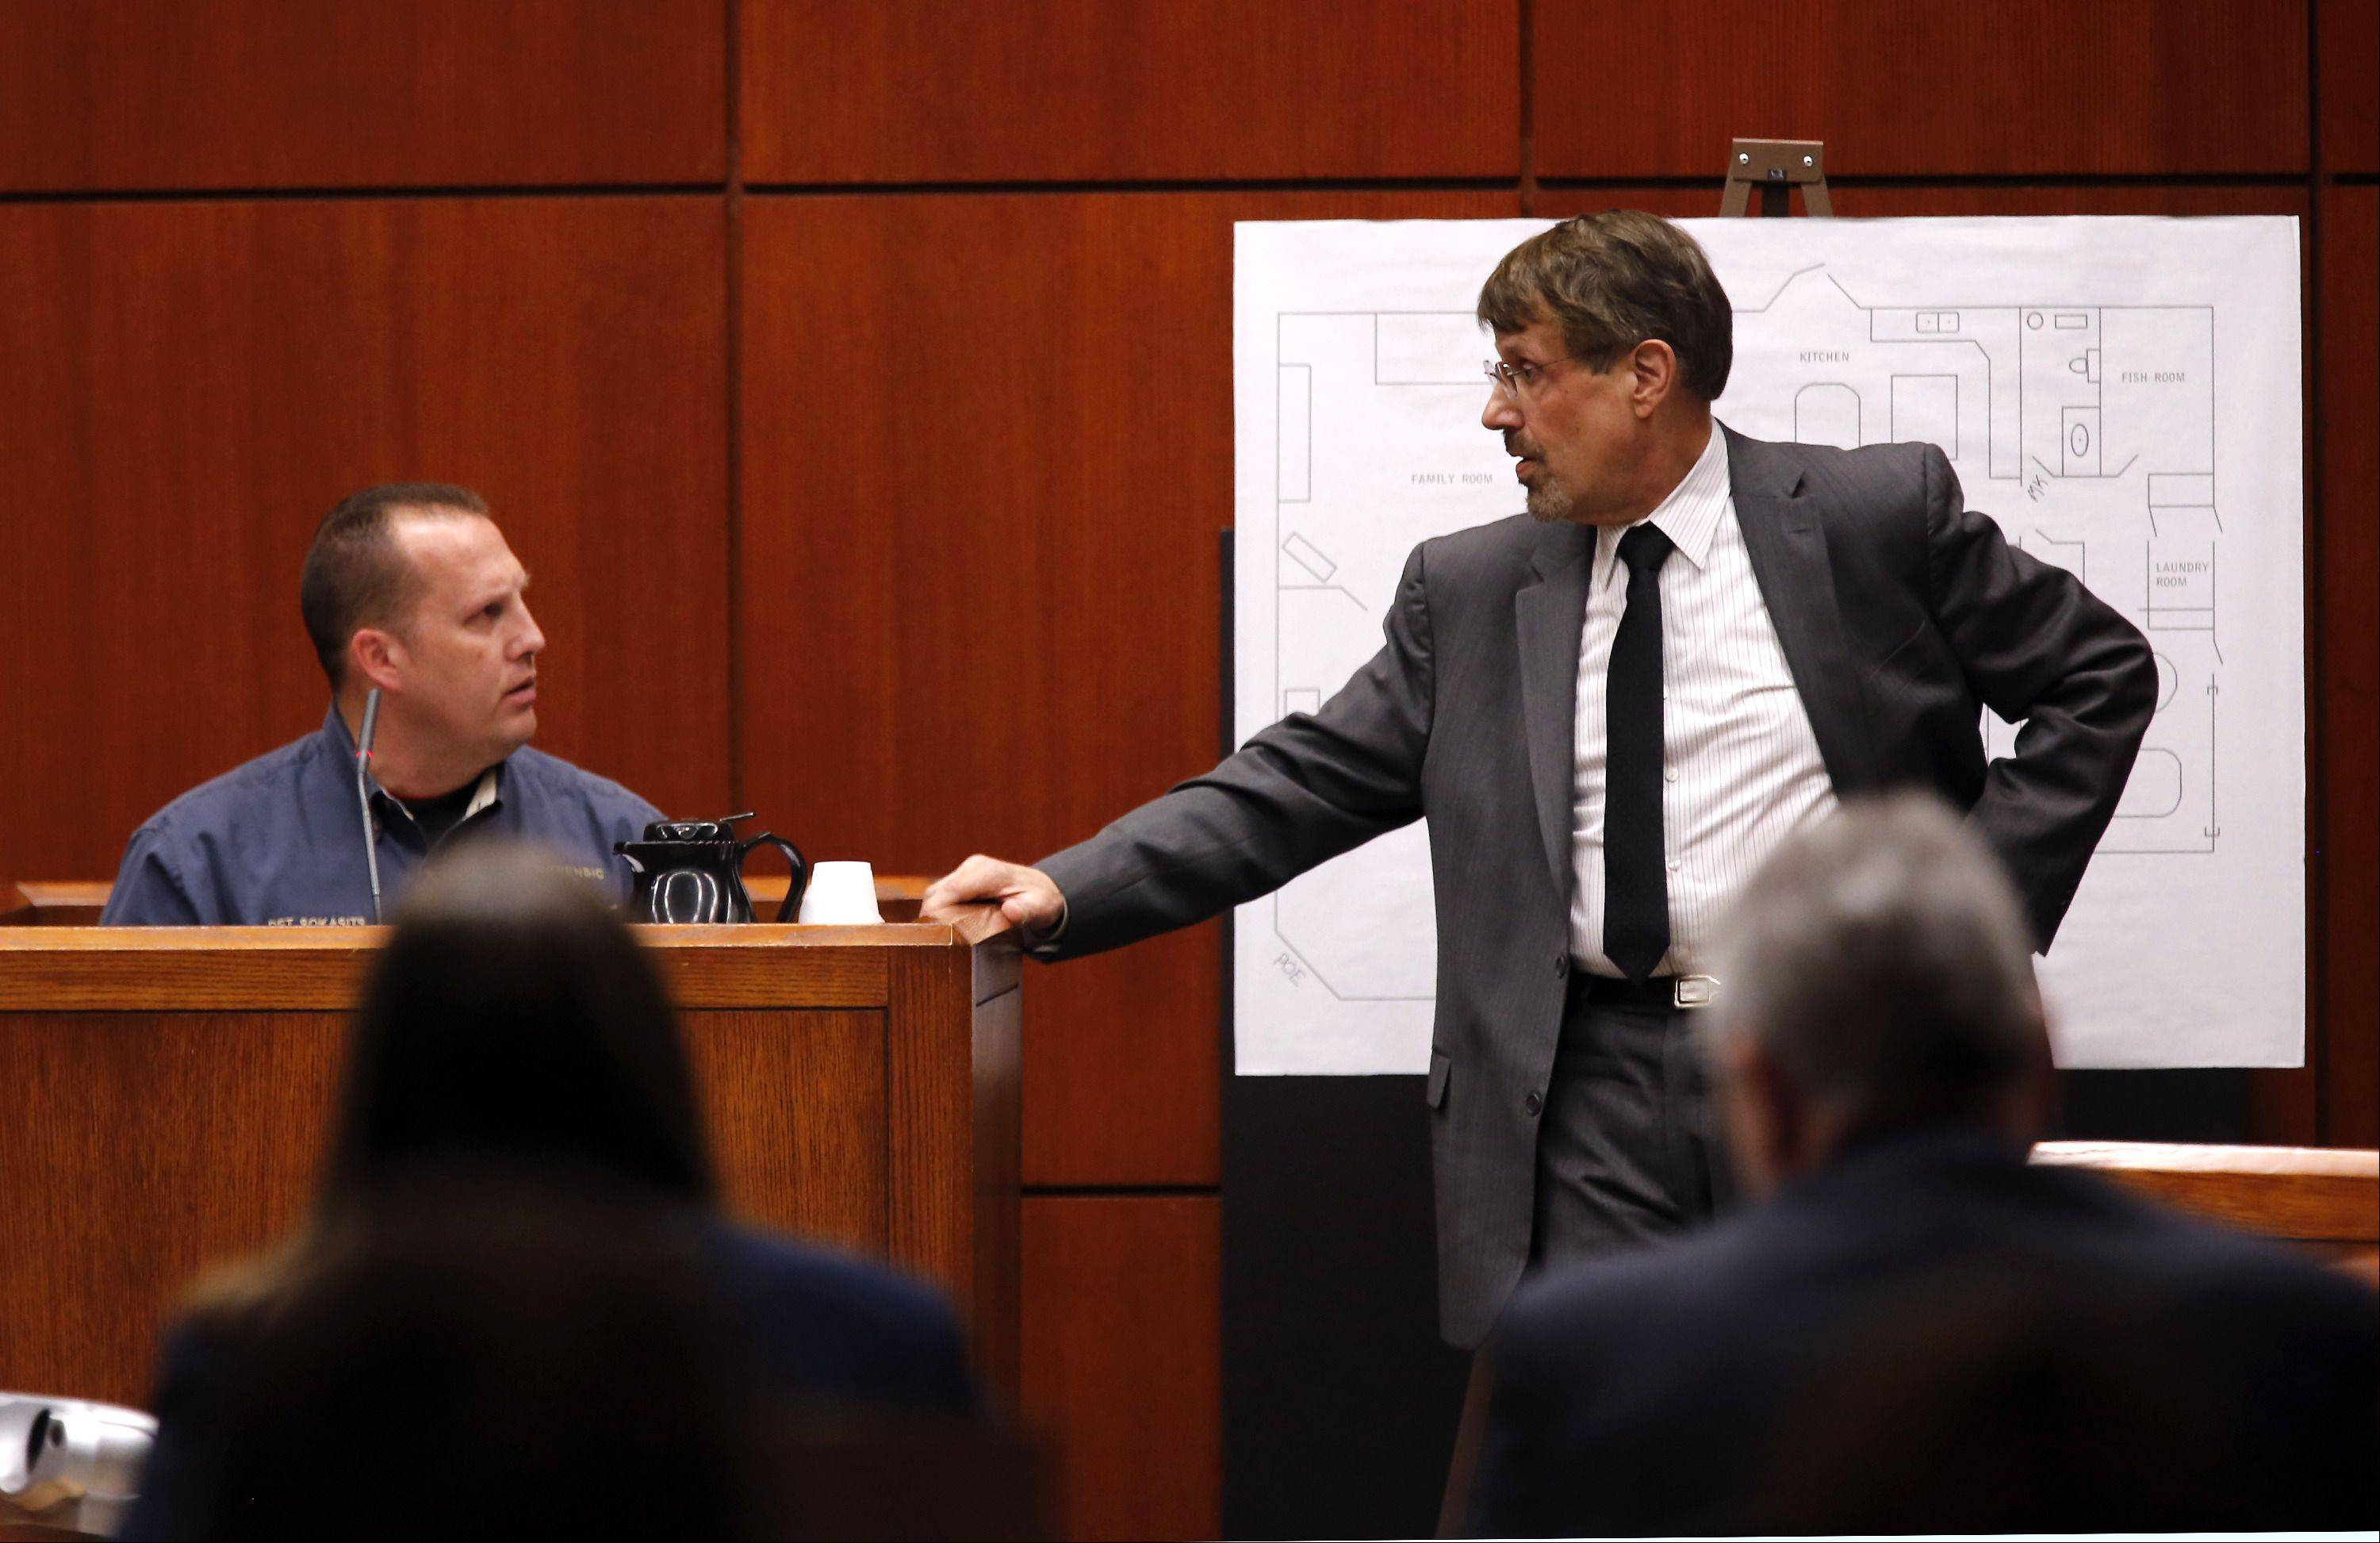 POOL/Chicago Tribune, Chuck BermanDuPage County sheriff's police detective Edward Sokasits, left, is questioned by defense attorney Richard Kling on Wednesday during the trial of Johnny Borizov at the DuPage County courthouse.